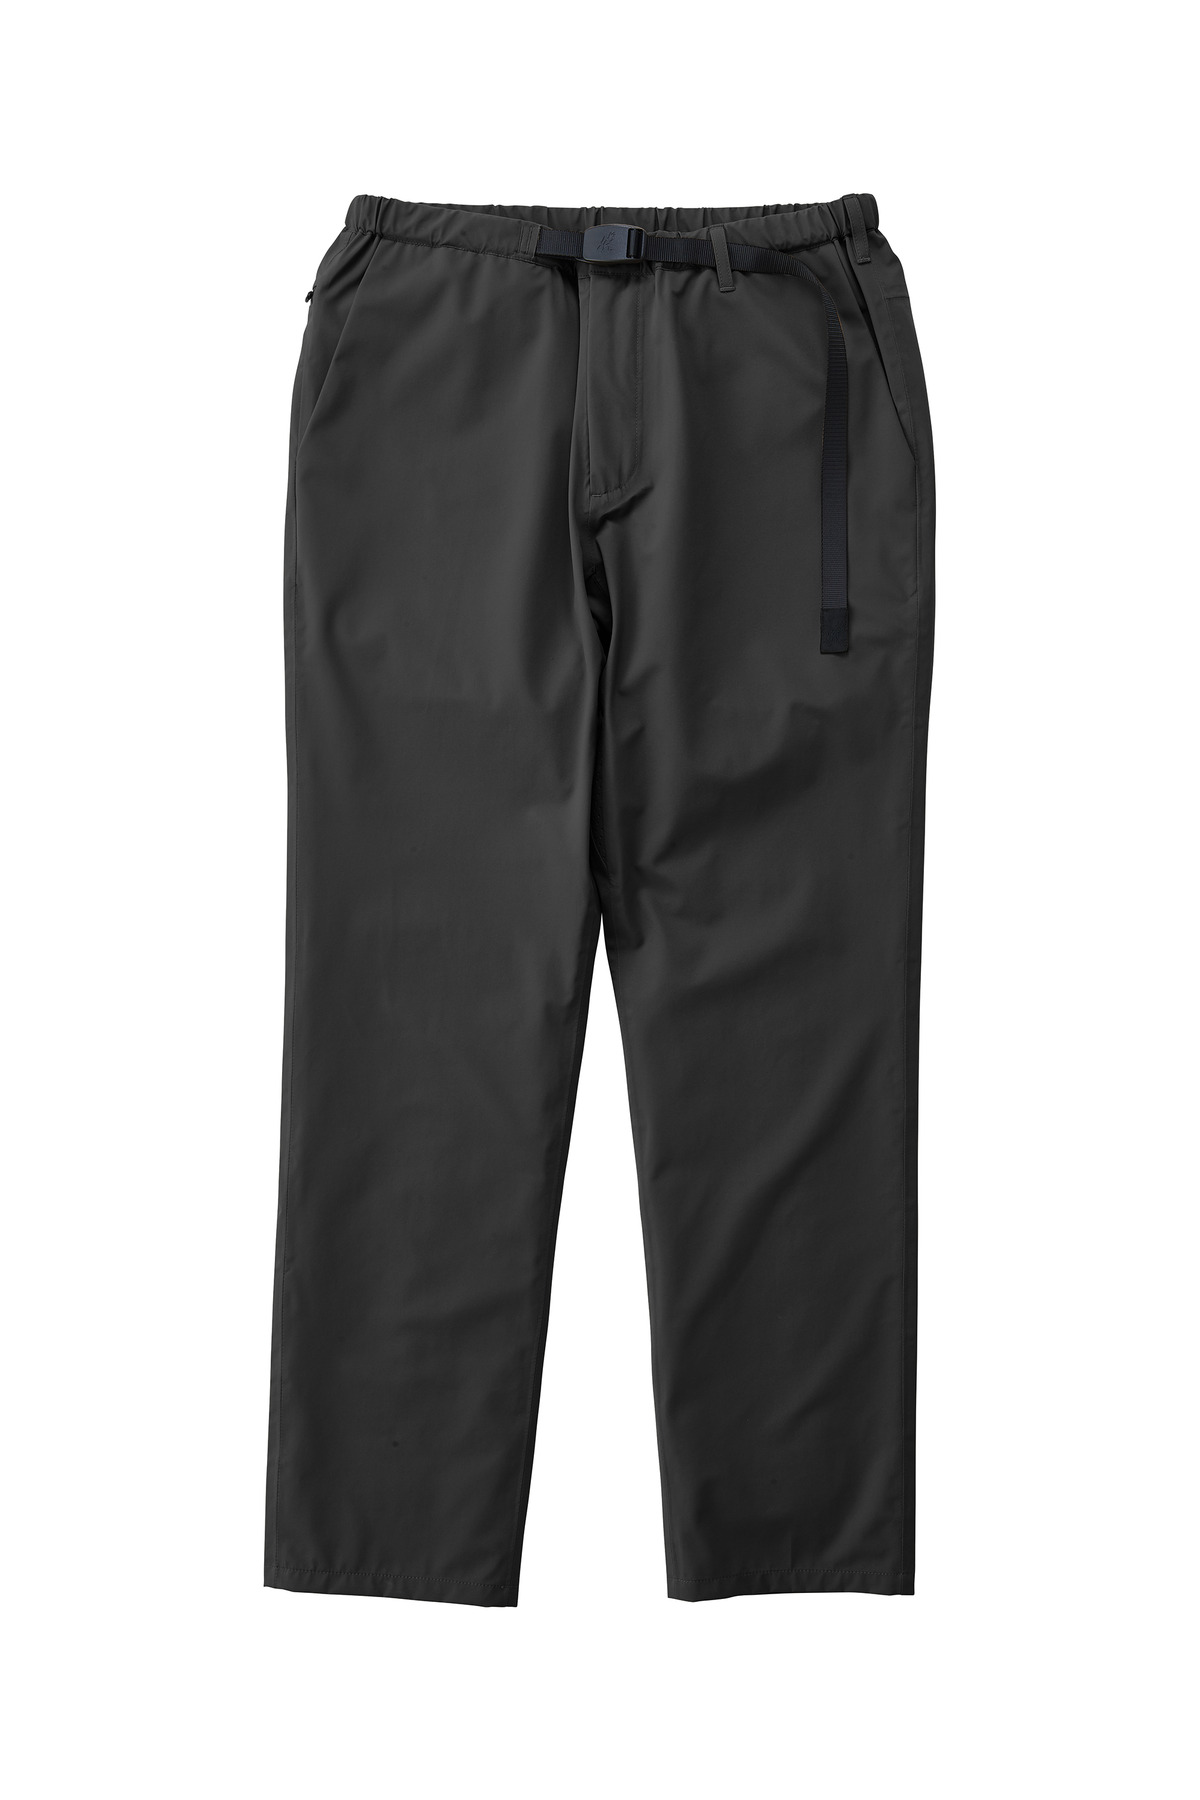 3LAYER REDROCK PANTS BLACK